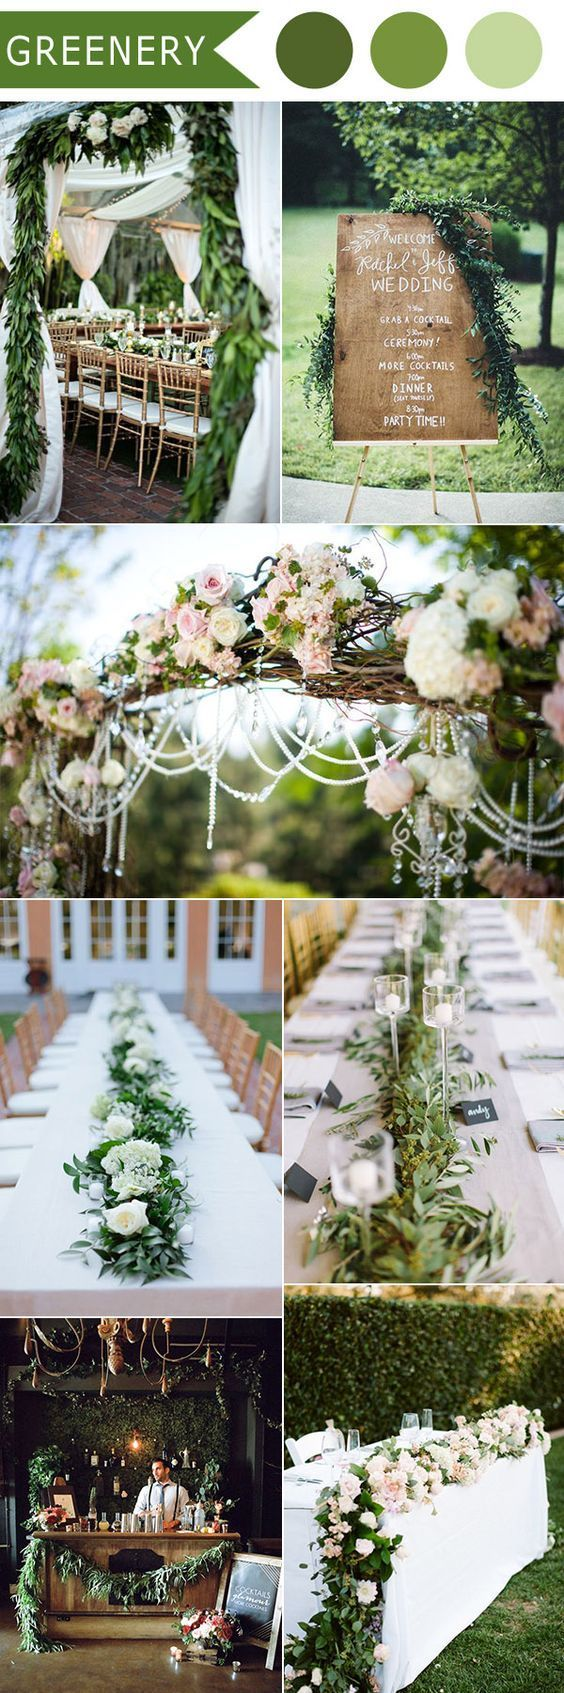 Nude and Greenery Wedding Color Ideas for Your Big Day www.brides-book.com/ #gardenwedding